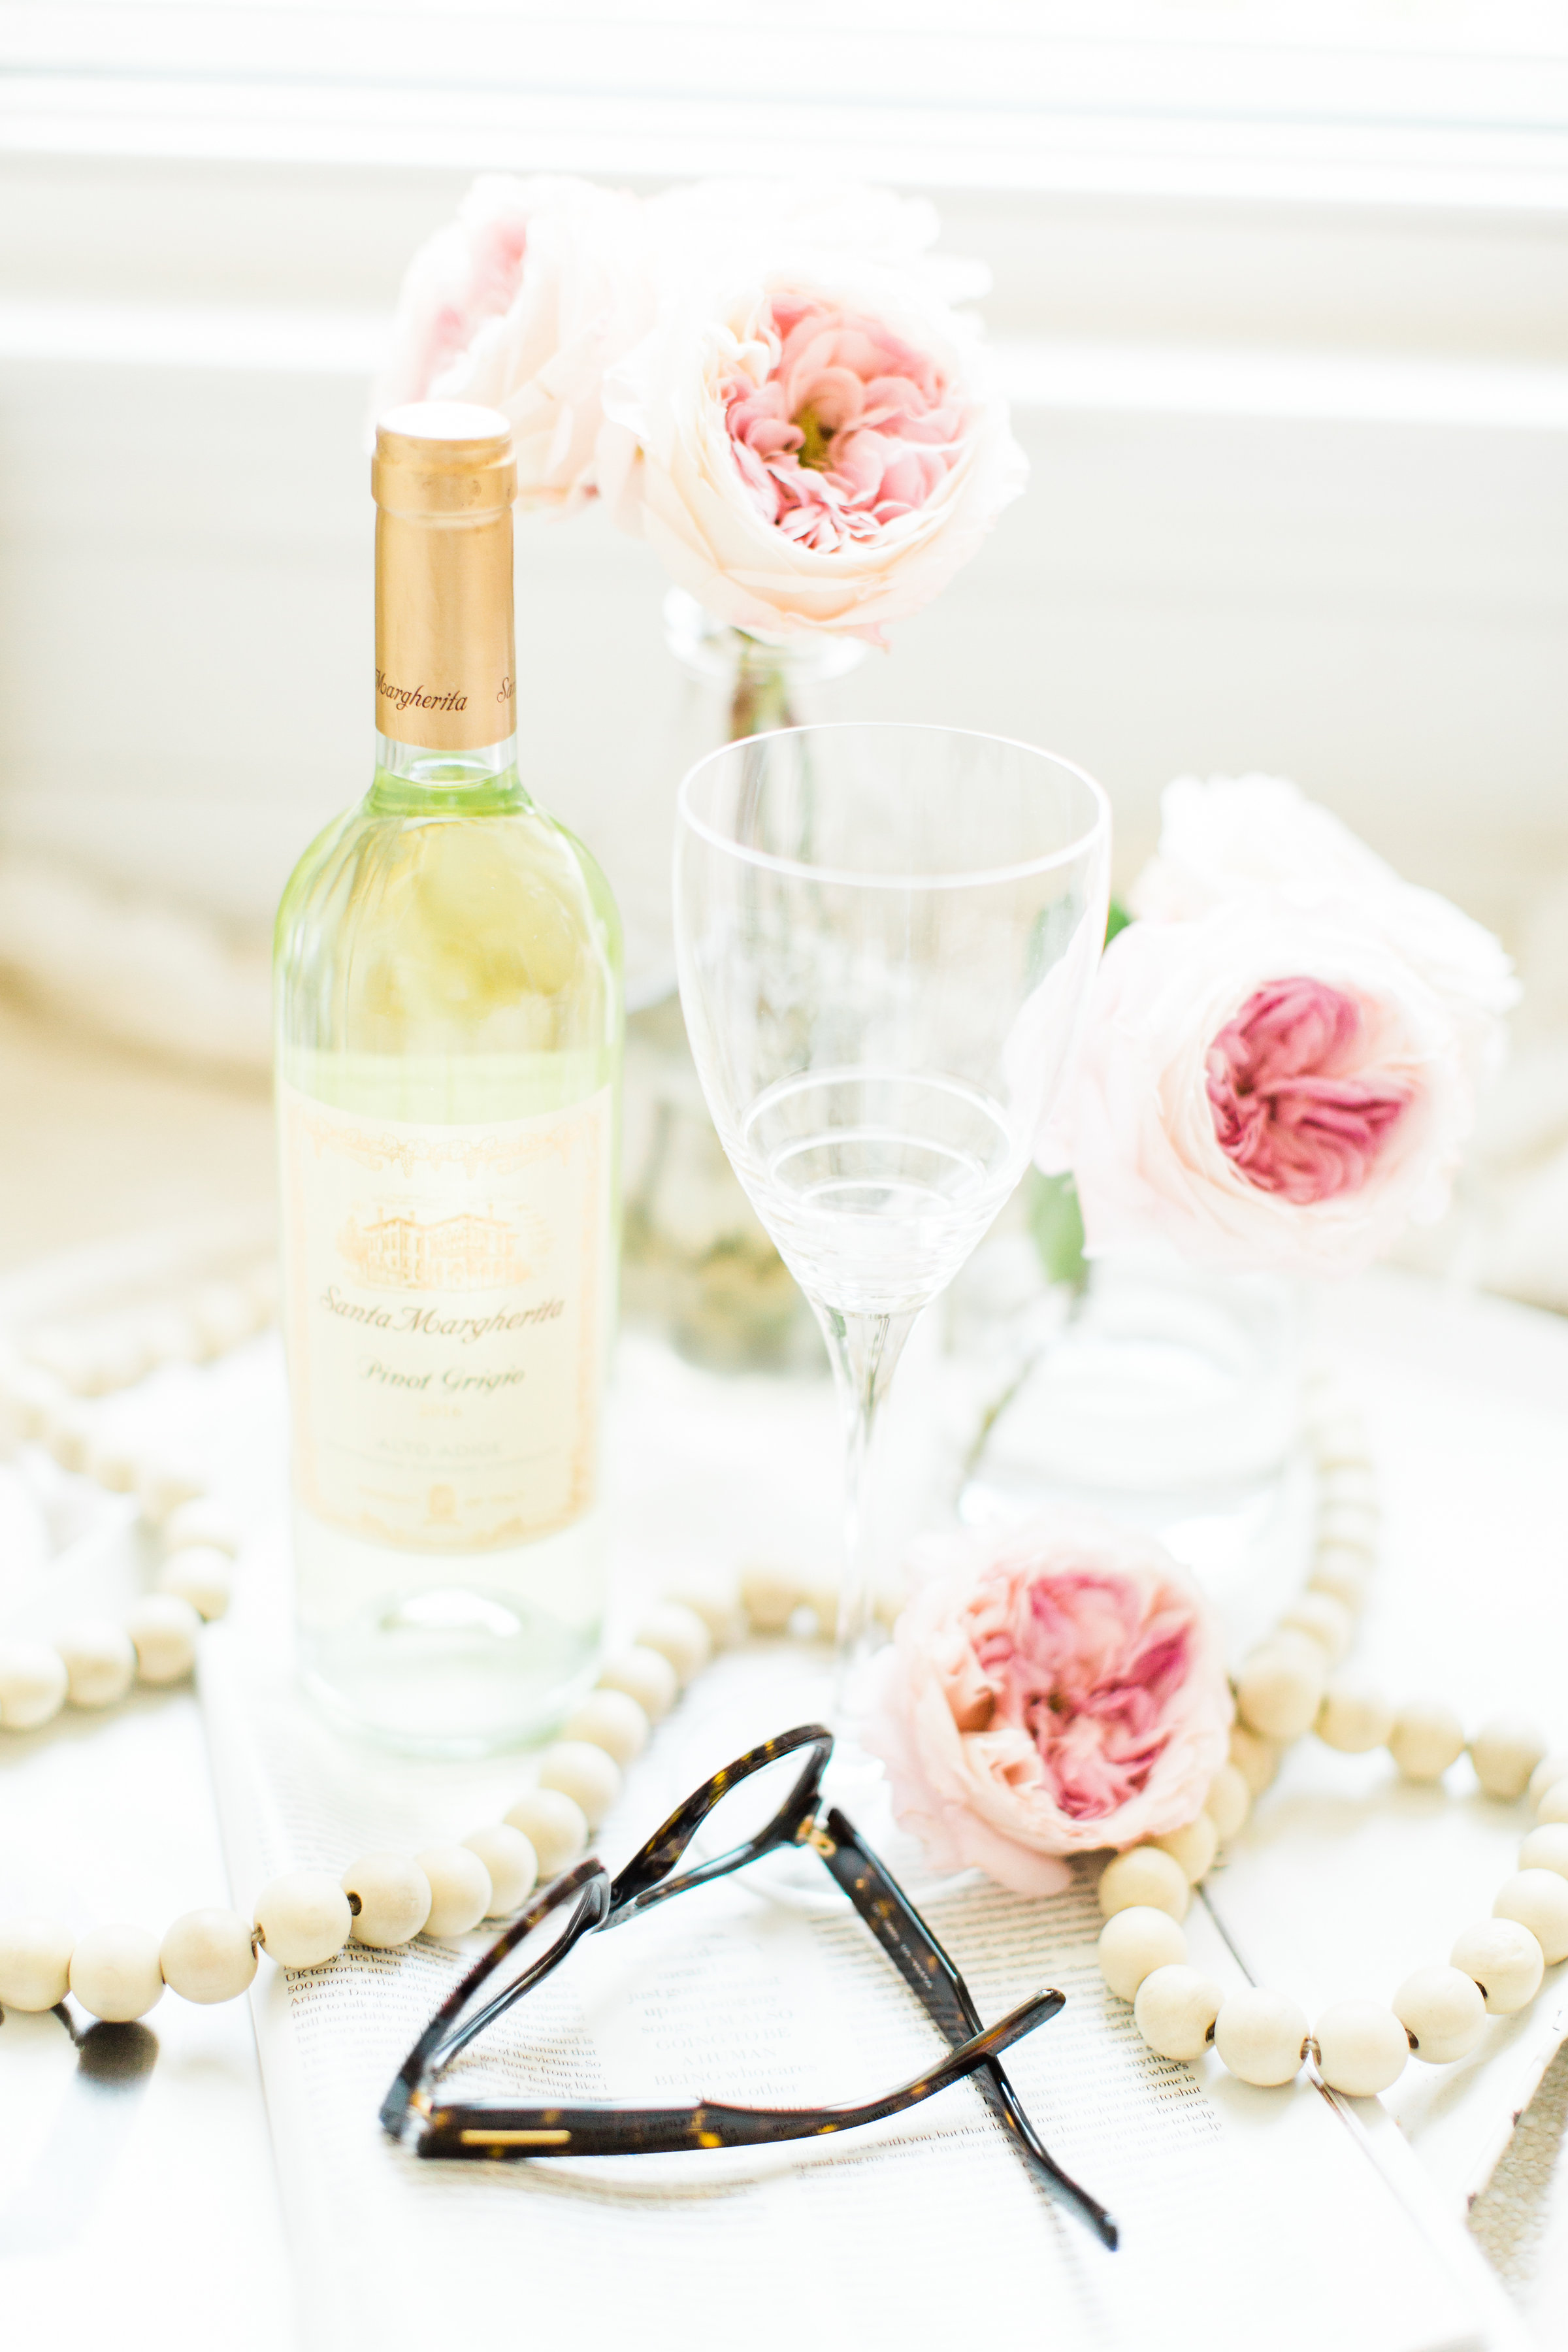 Lifestyle blogger Lexi of Glitter, Inc. shares a few little love notes to the things she loved most this week, including how to have a date night at home. #datenight #wine #glasses #roses #flowers Click through for the details. | glitterinc.com | @glitterinc